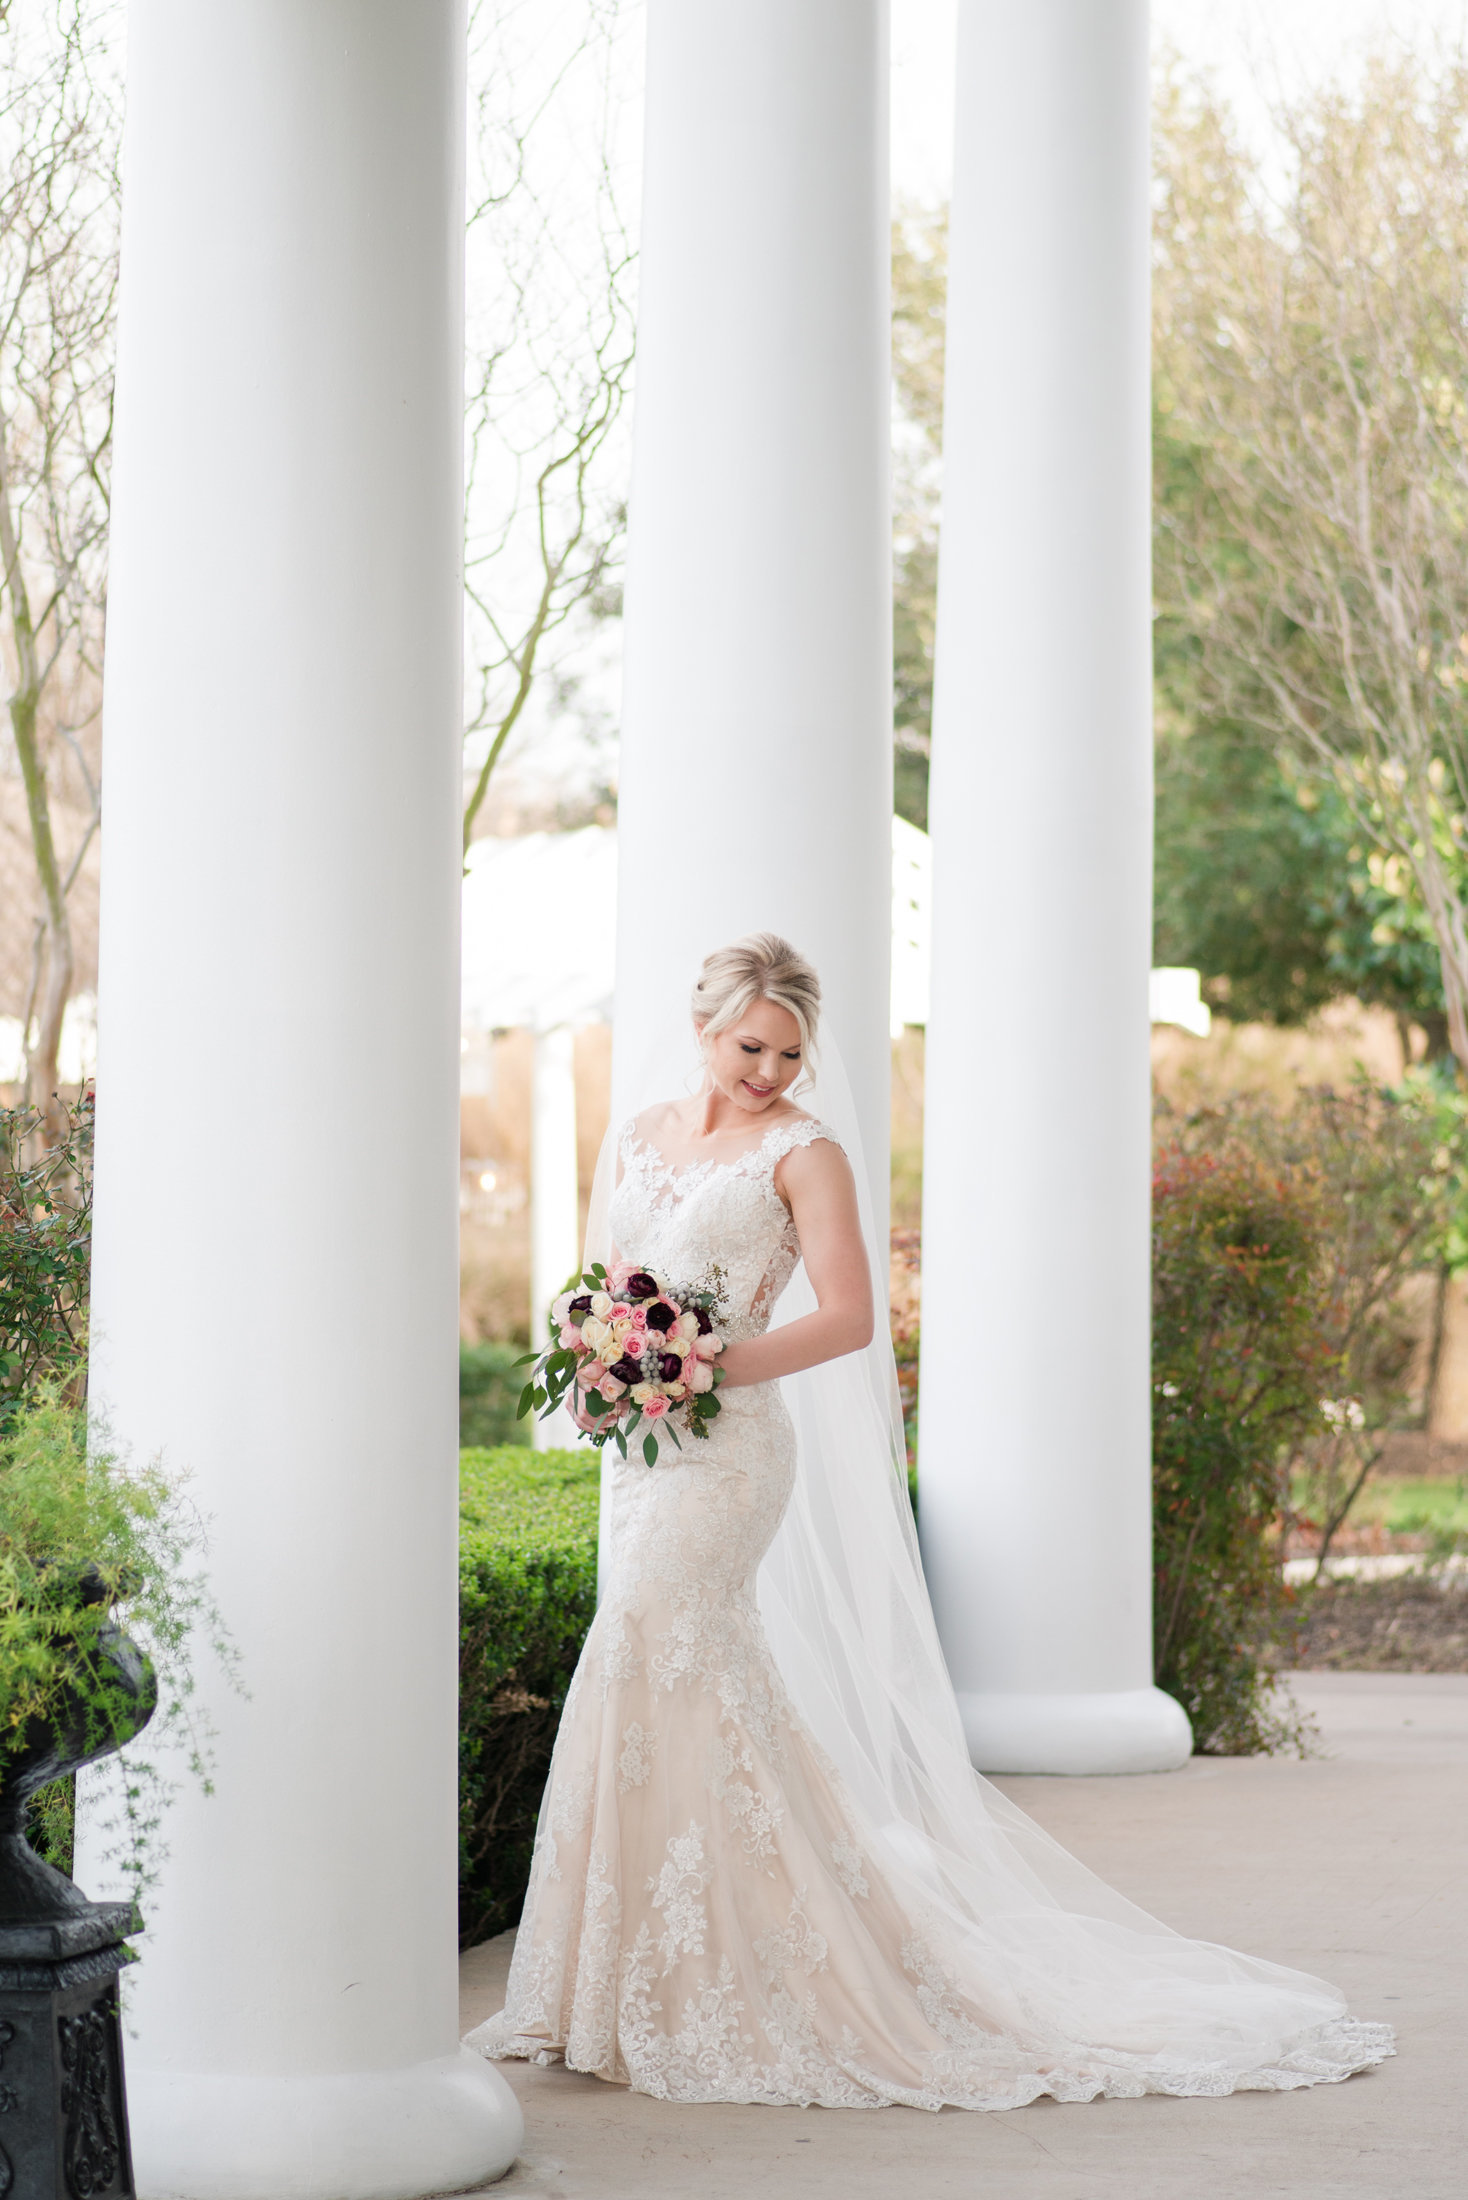 Bride with blush and burgundy bridal bouquet stands on porch of the Plantation House in Pflugerville, Texas